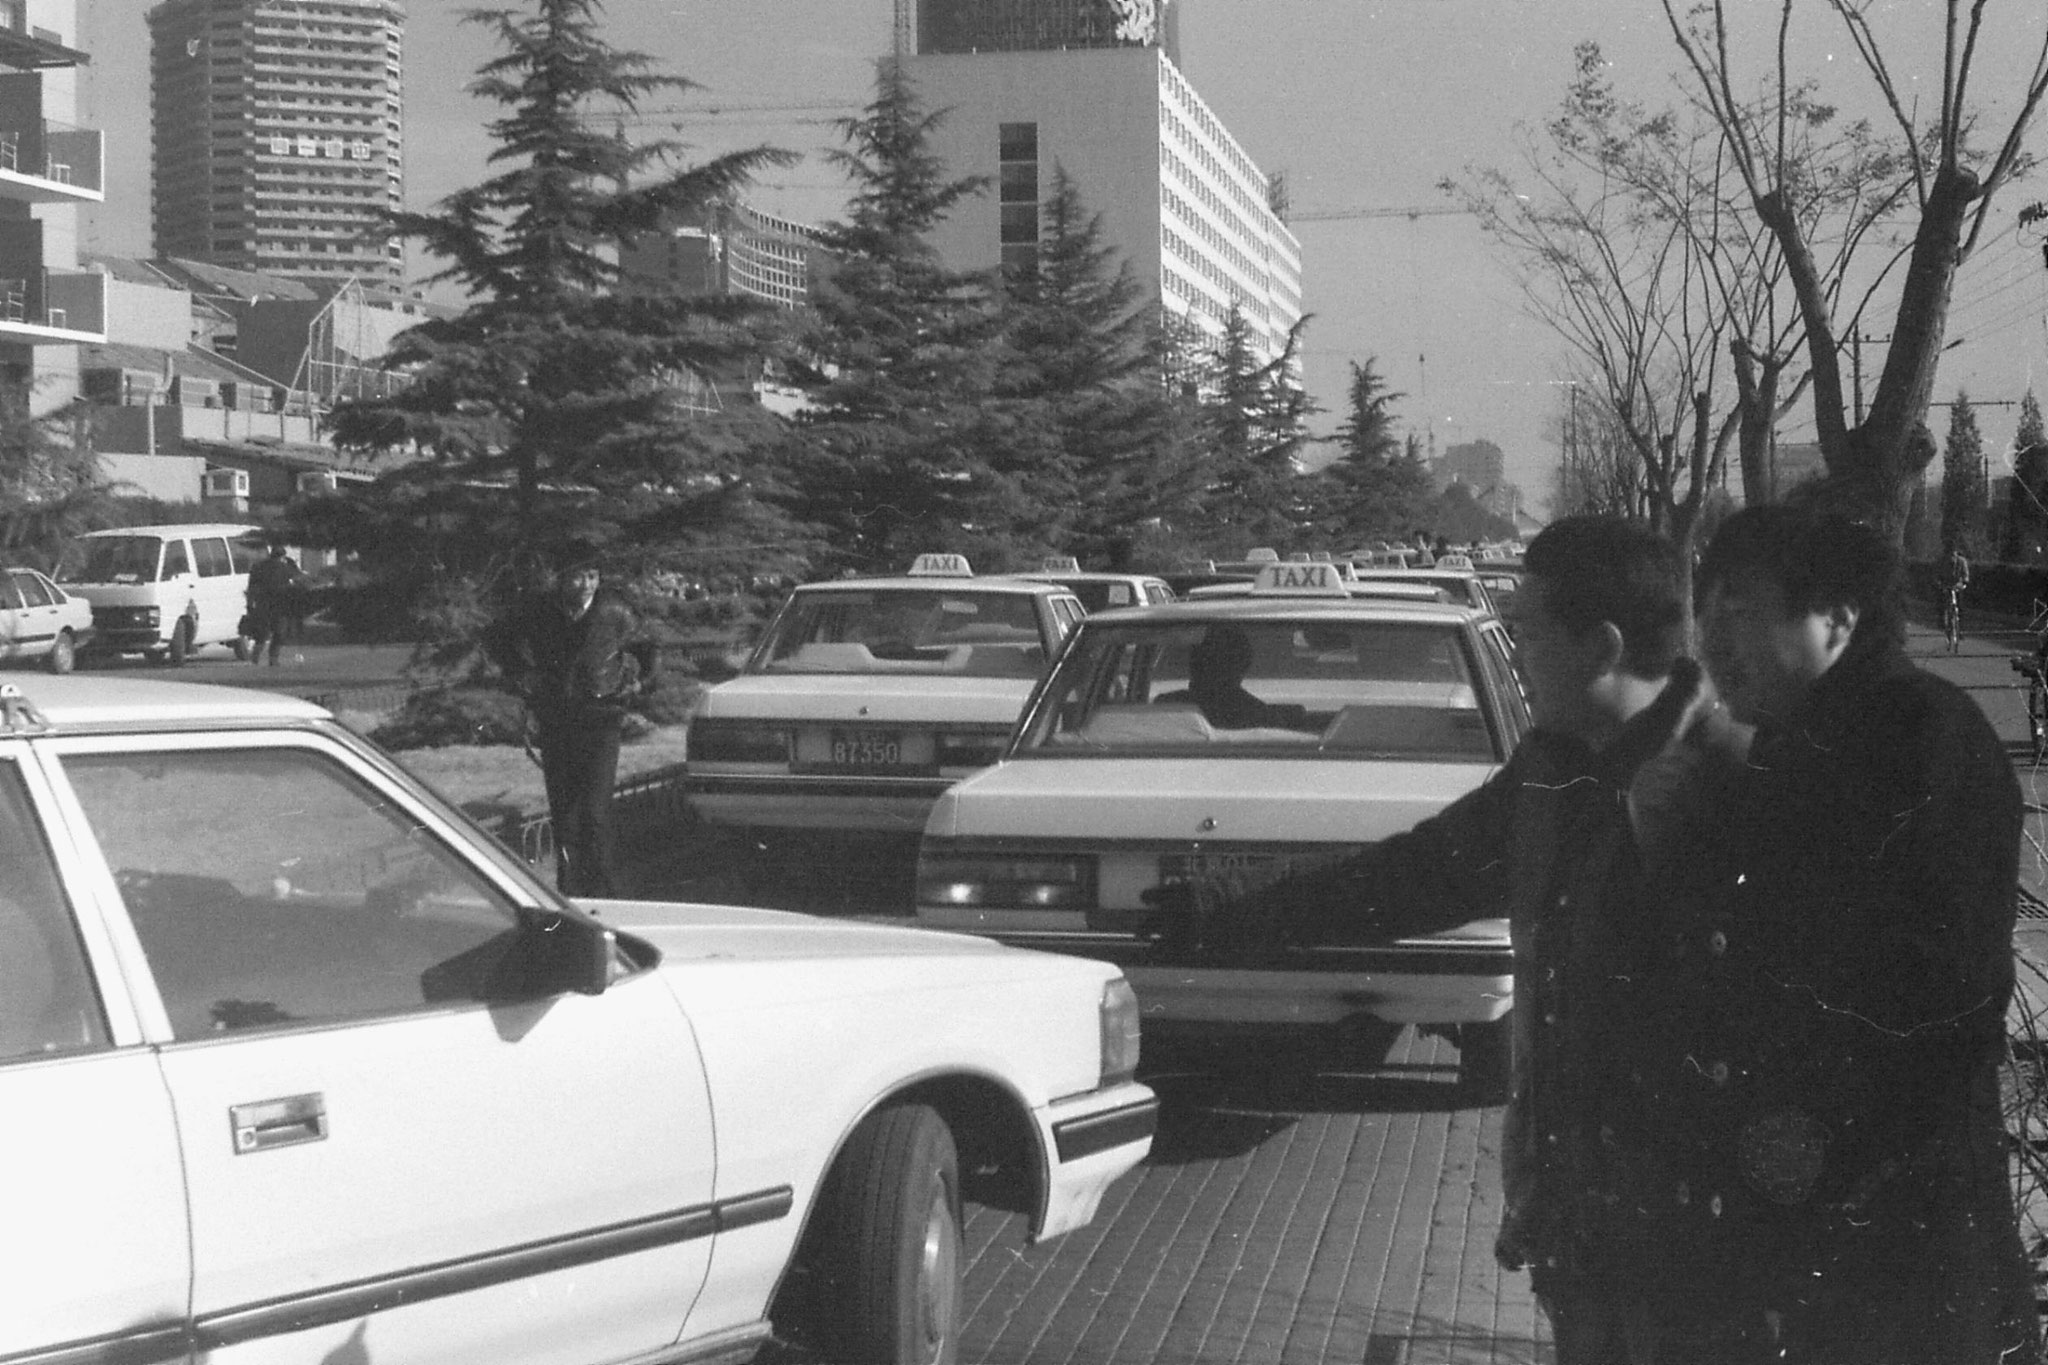 26/11/1988: 19: taxis in front of Jianguo Hotel